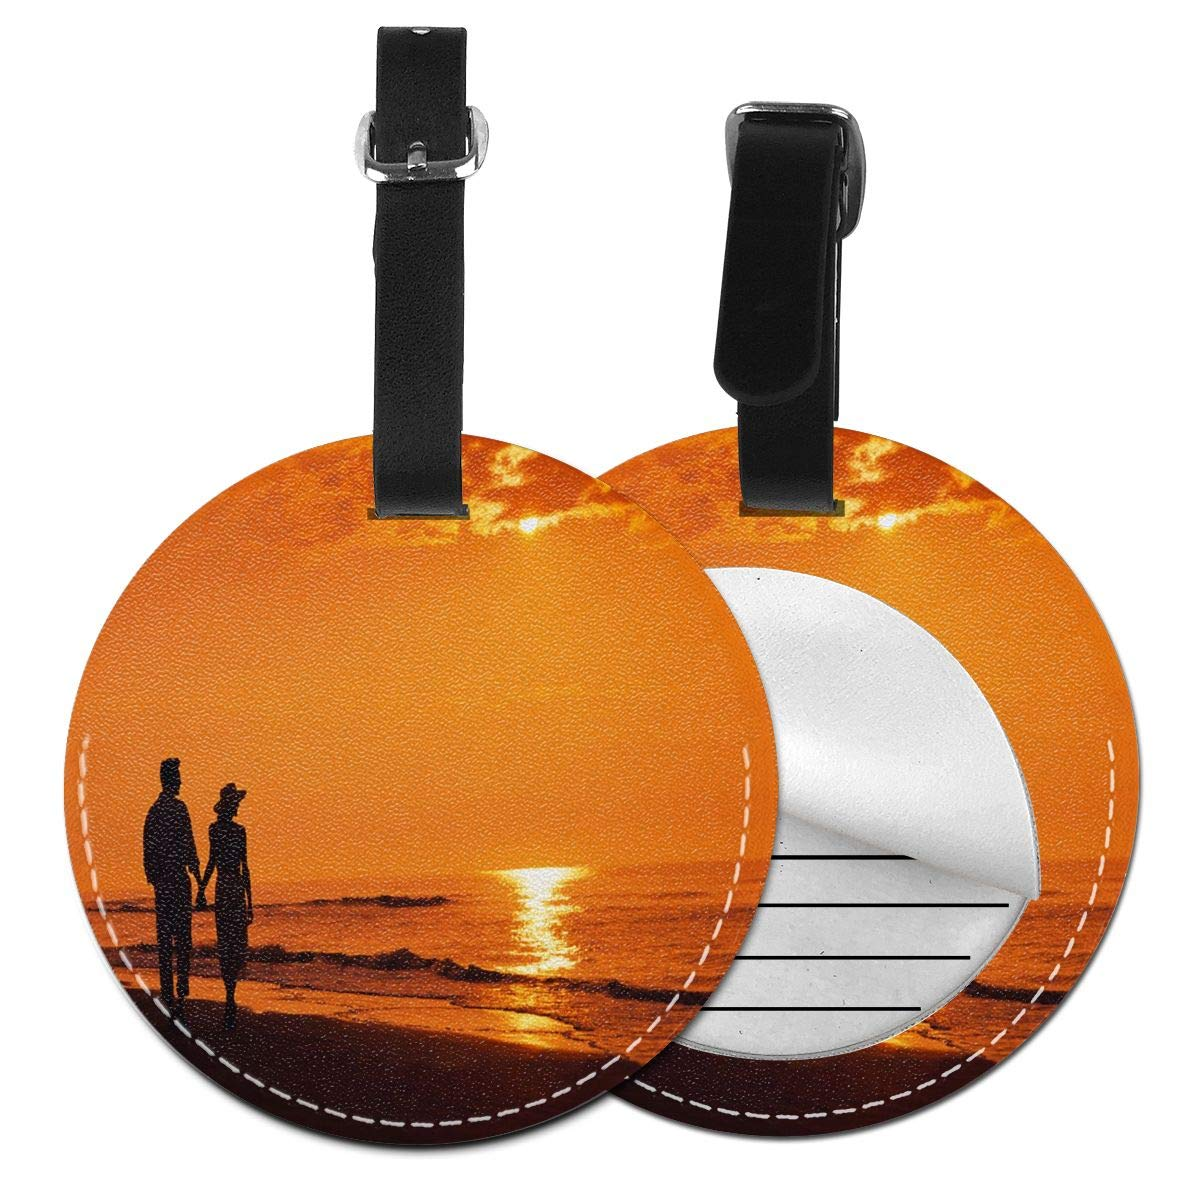 Hot Love Couple Wallpaper Luggage Tag Suitcase Backpacks ID Tag with Adjustable Strap 4 Pack by Rachel Dora